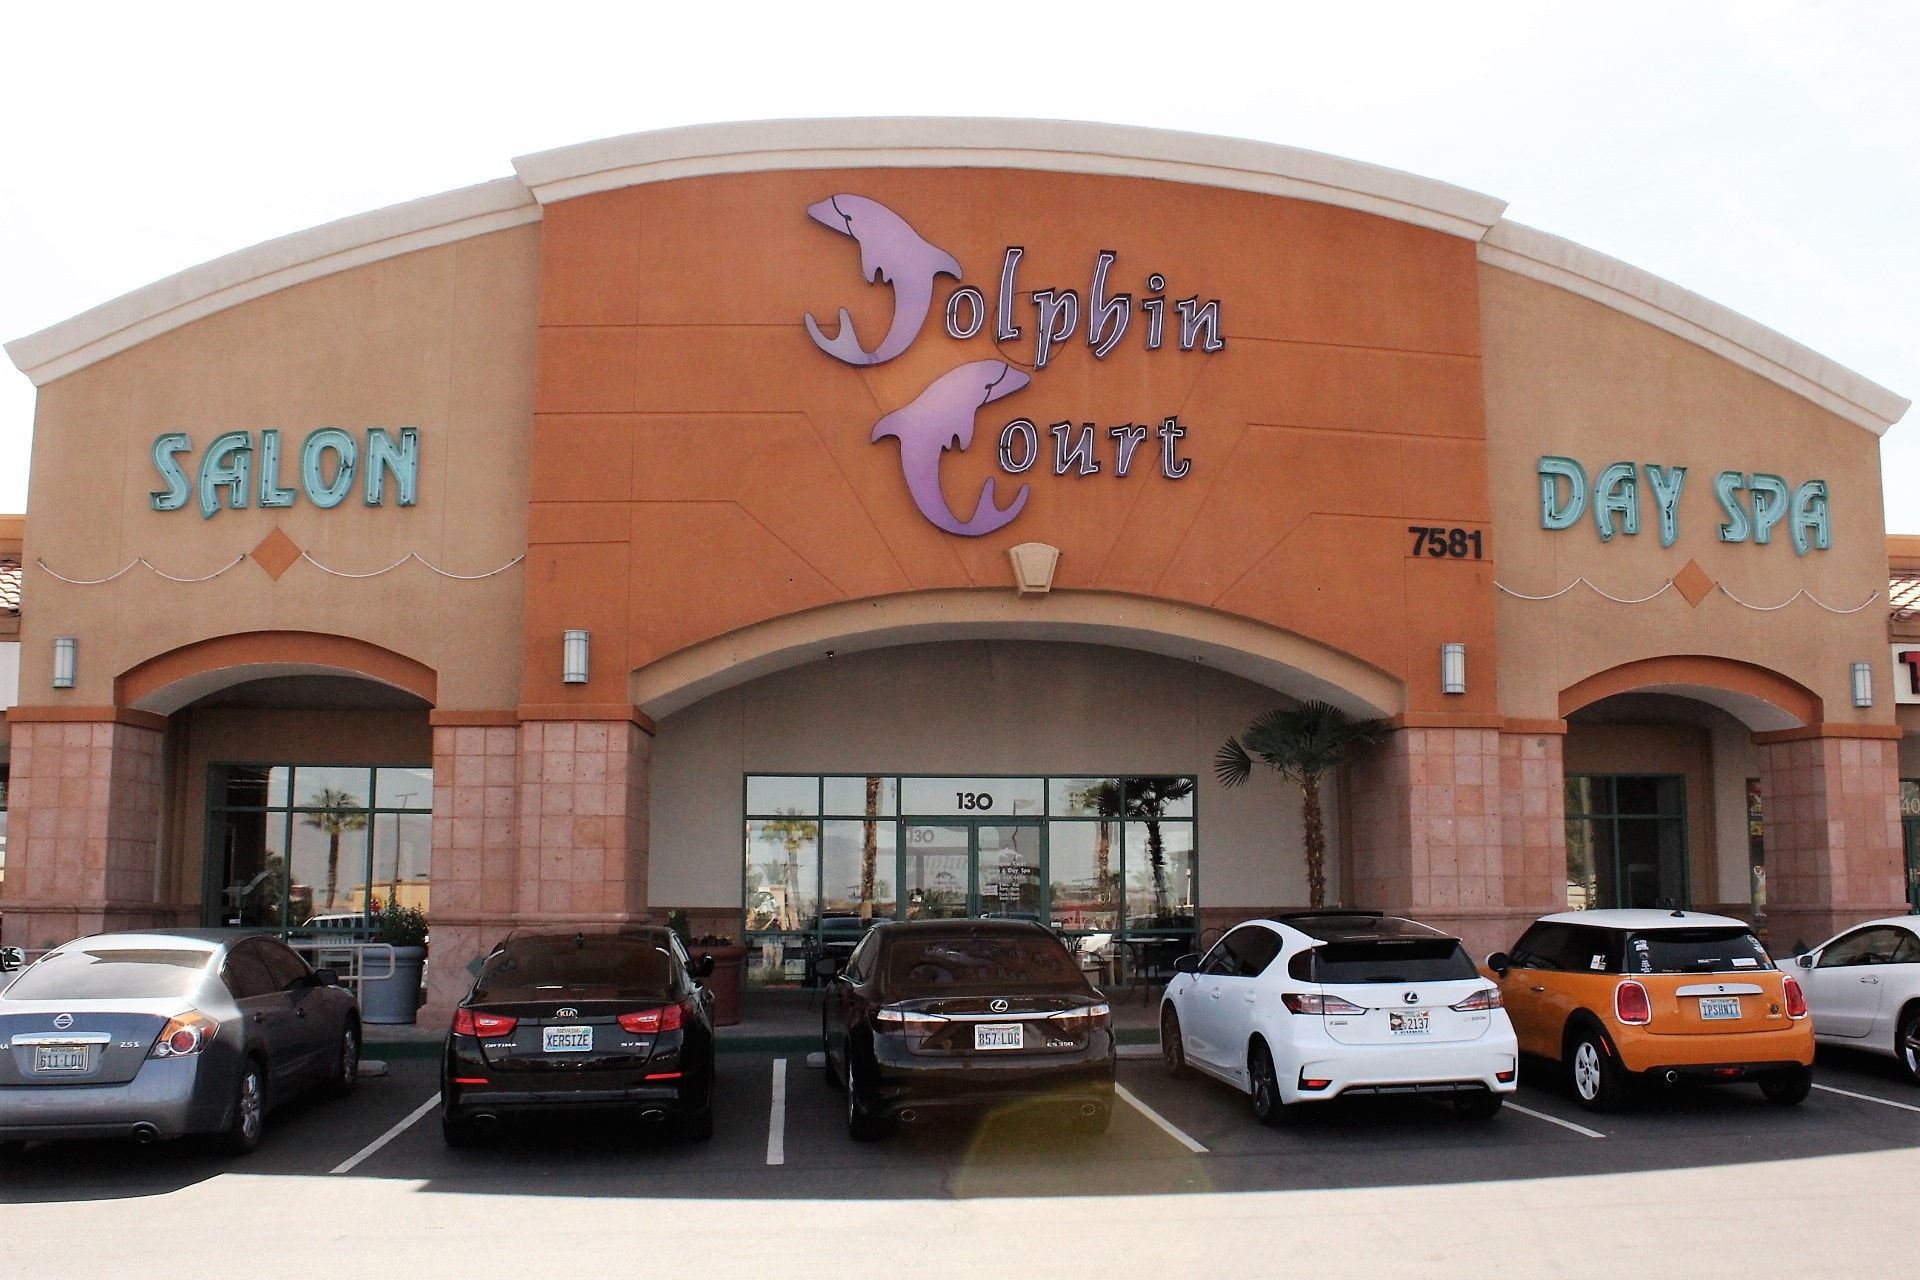 Dolphin Court Salon Day Spa I Las Vegas, Nv 89128-8989